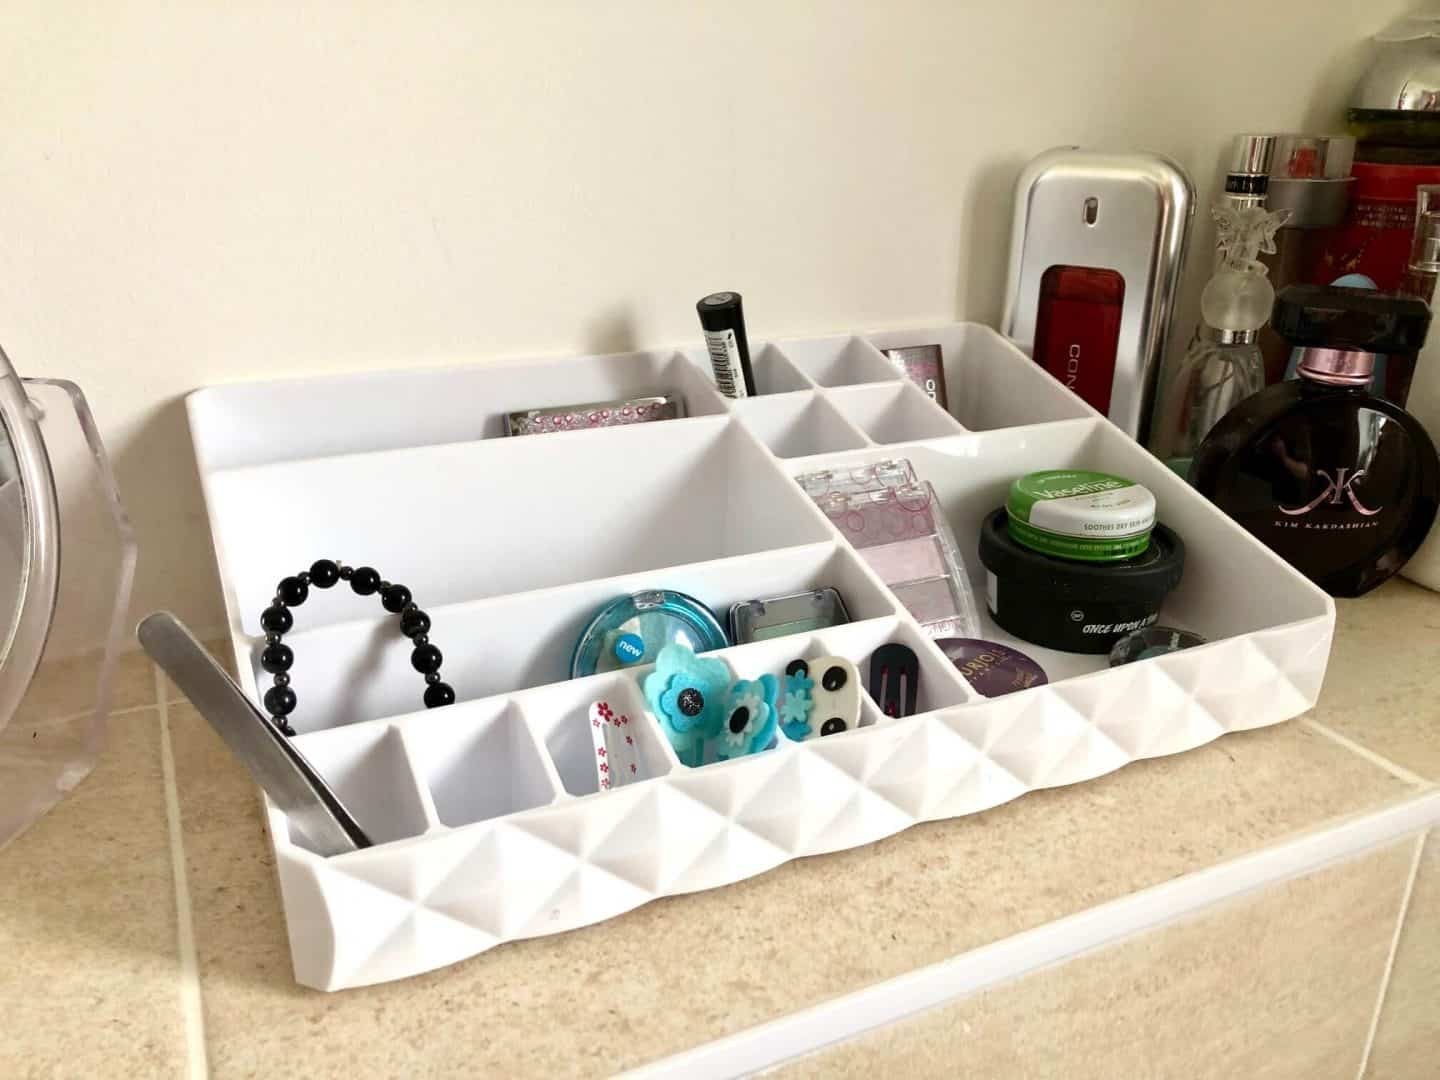 makeup and bathroom organiser